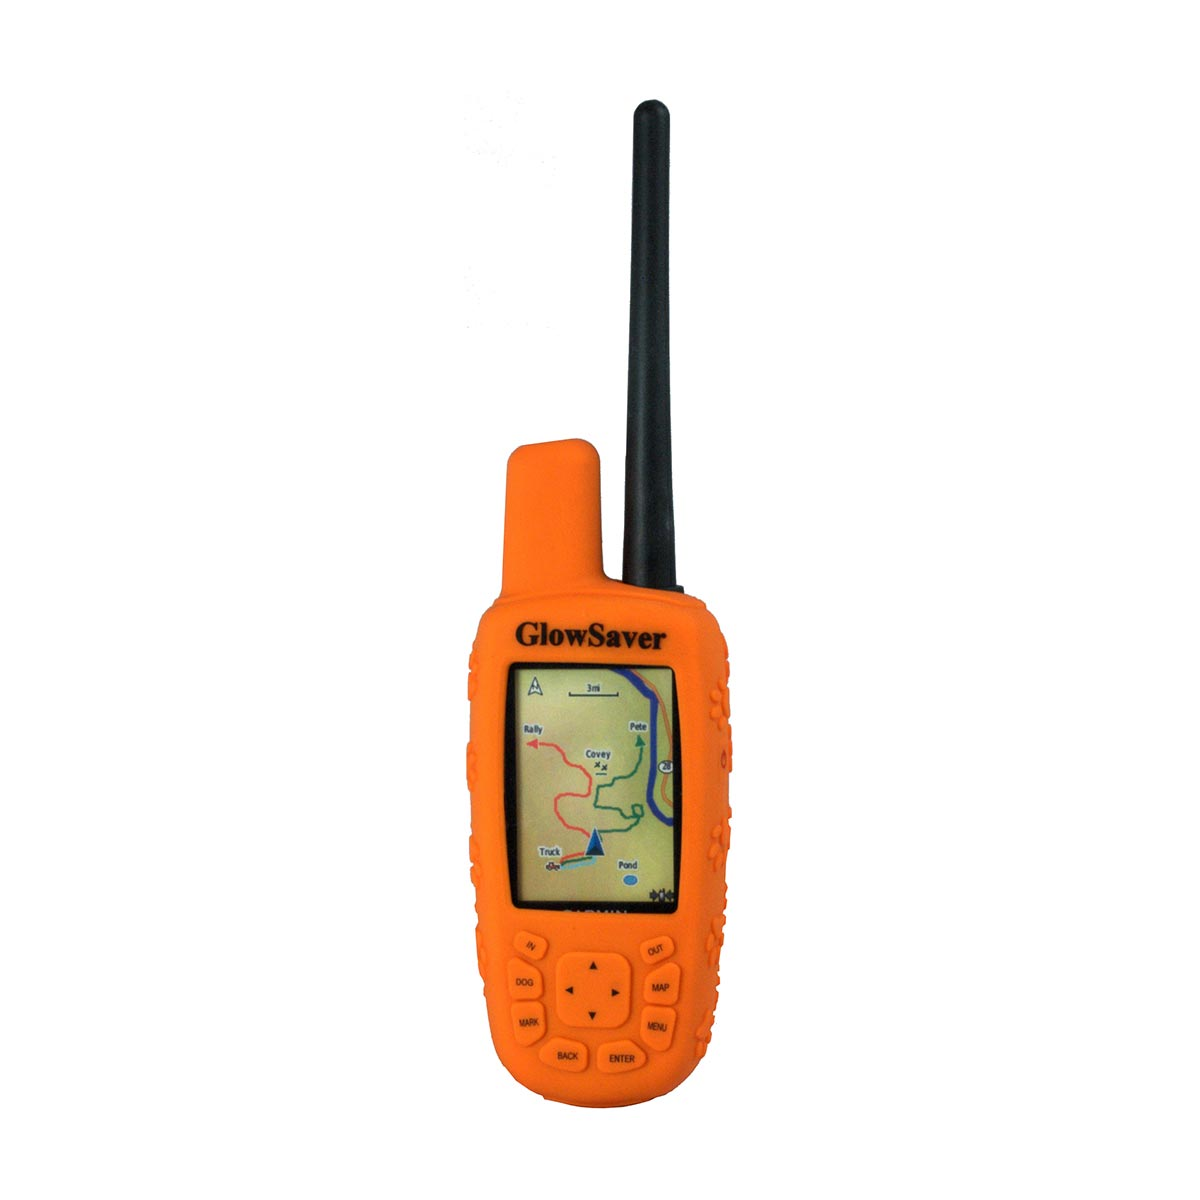 The Buzzard's Roost GlowSaver Case for Astro with Screen Protectors Bright Orange Dog GPS Tracking - London the Local